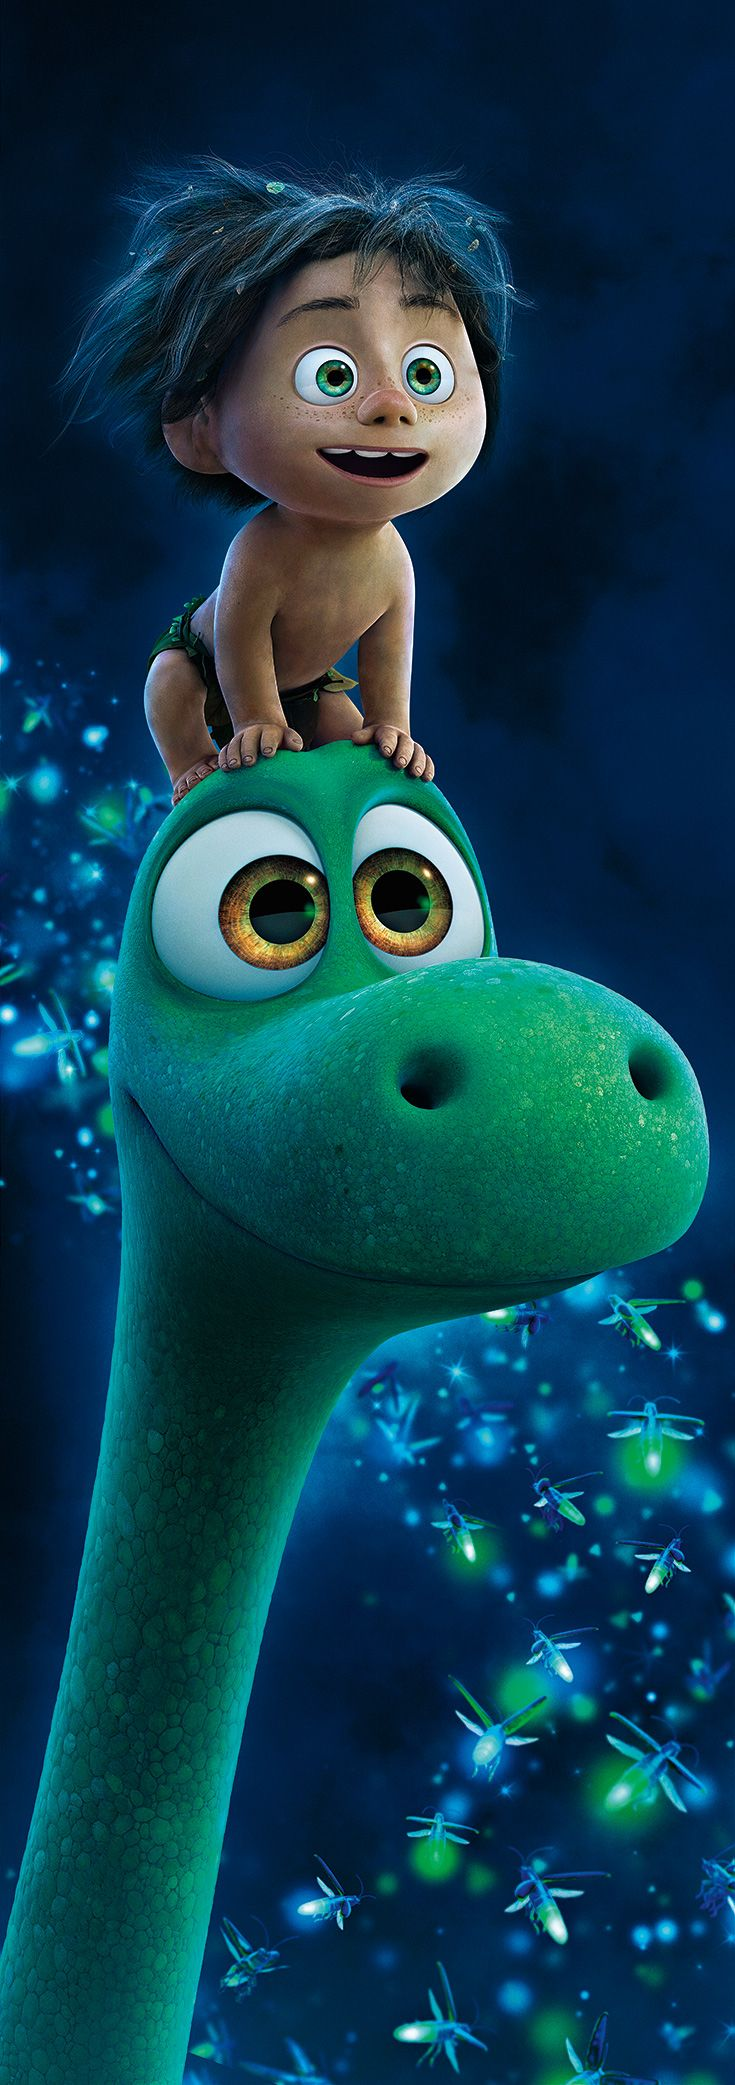 Look out, The Good Dinosaur is on it's way to cinemas this Boxing Day! #GoodDino